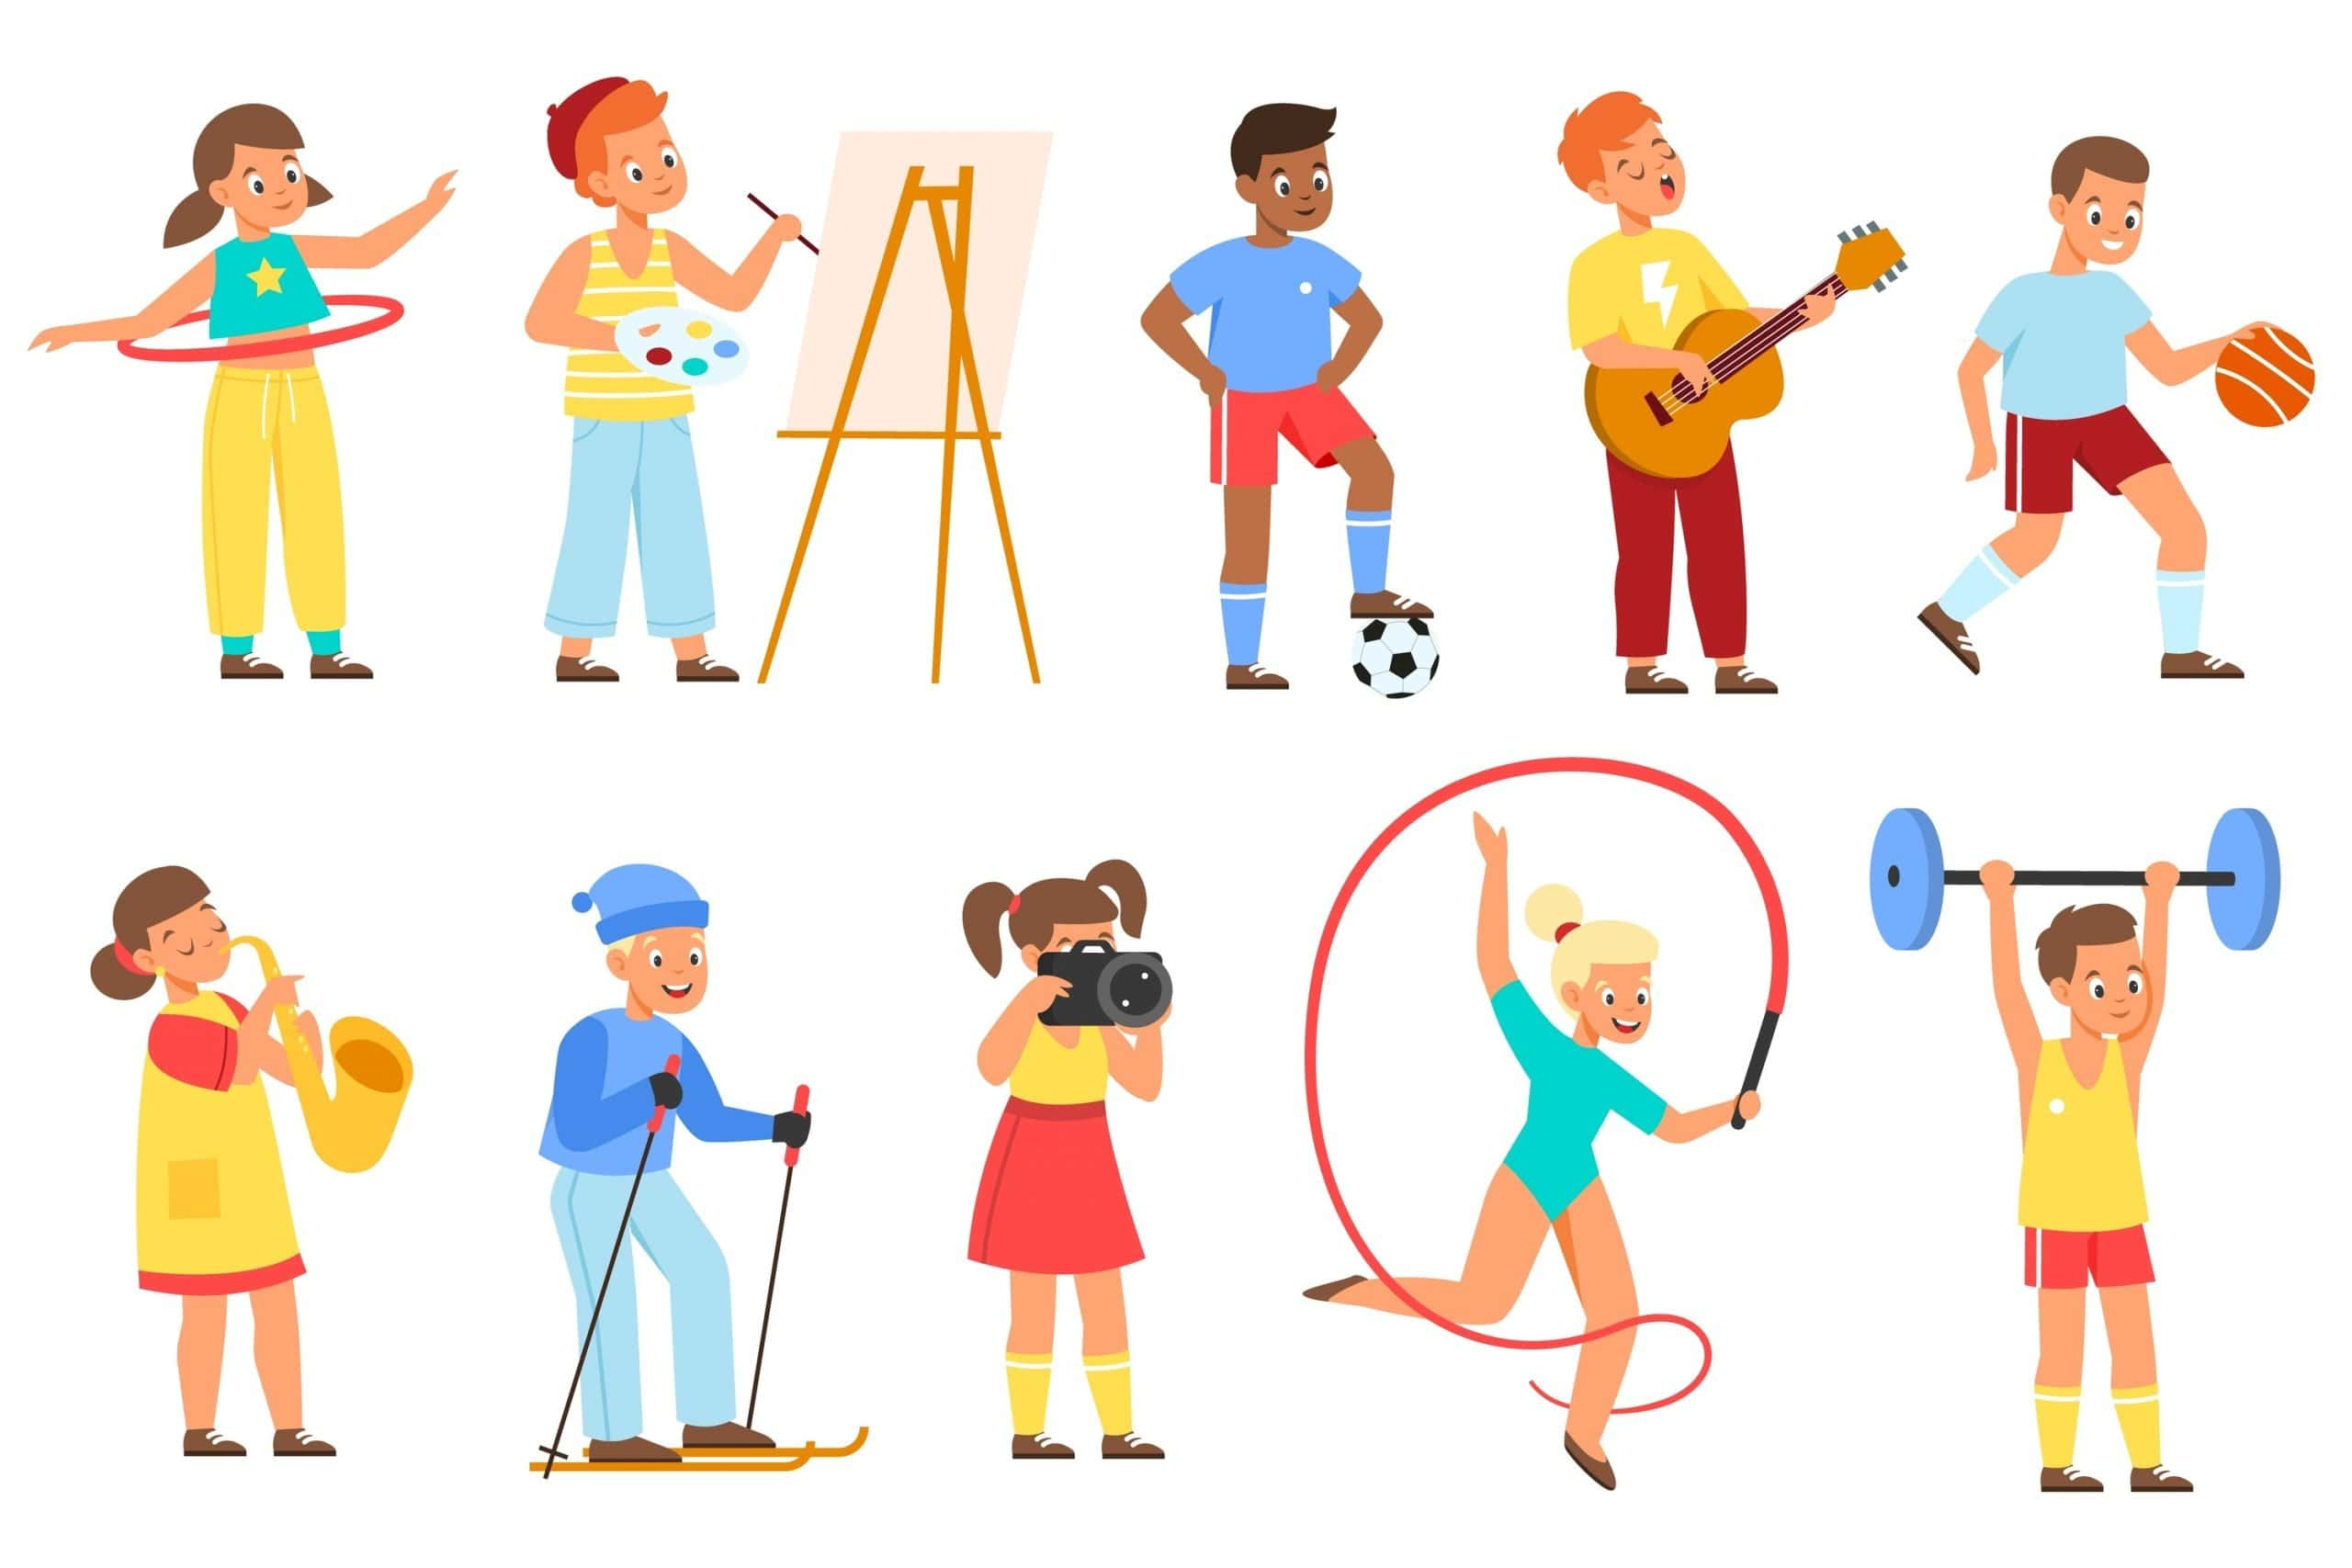 Kids hobbies. Young athletes, musicians and artists, teenagers hold different objects, children activities and interests. Sports, drawing and leisure time. Vector cartoon flat isolated set